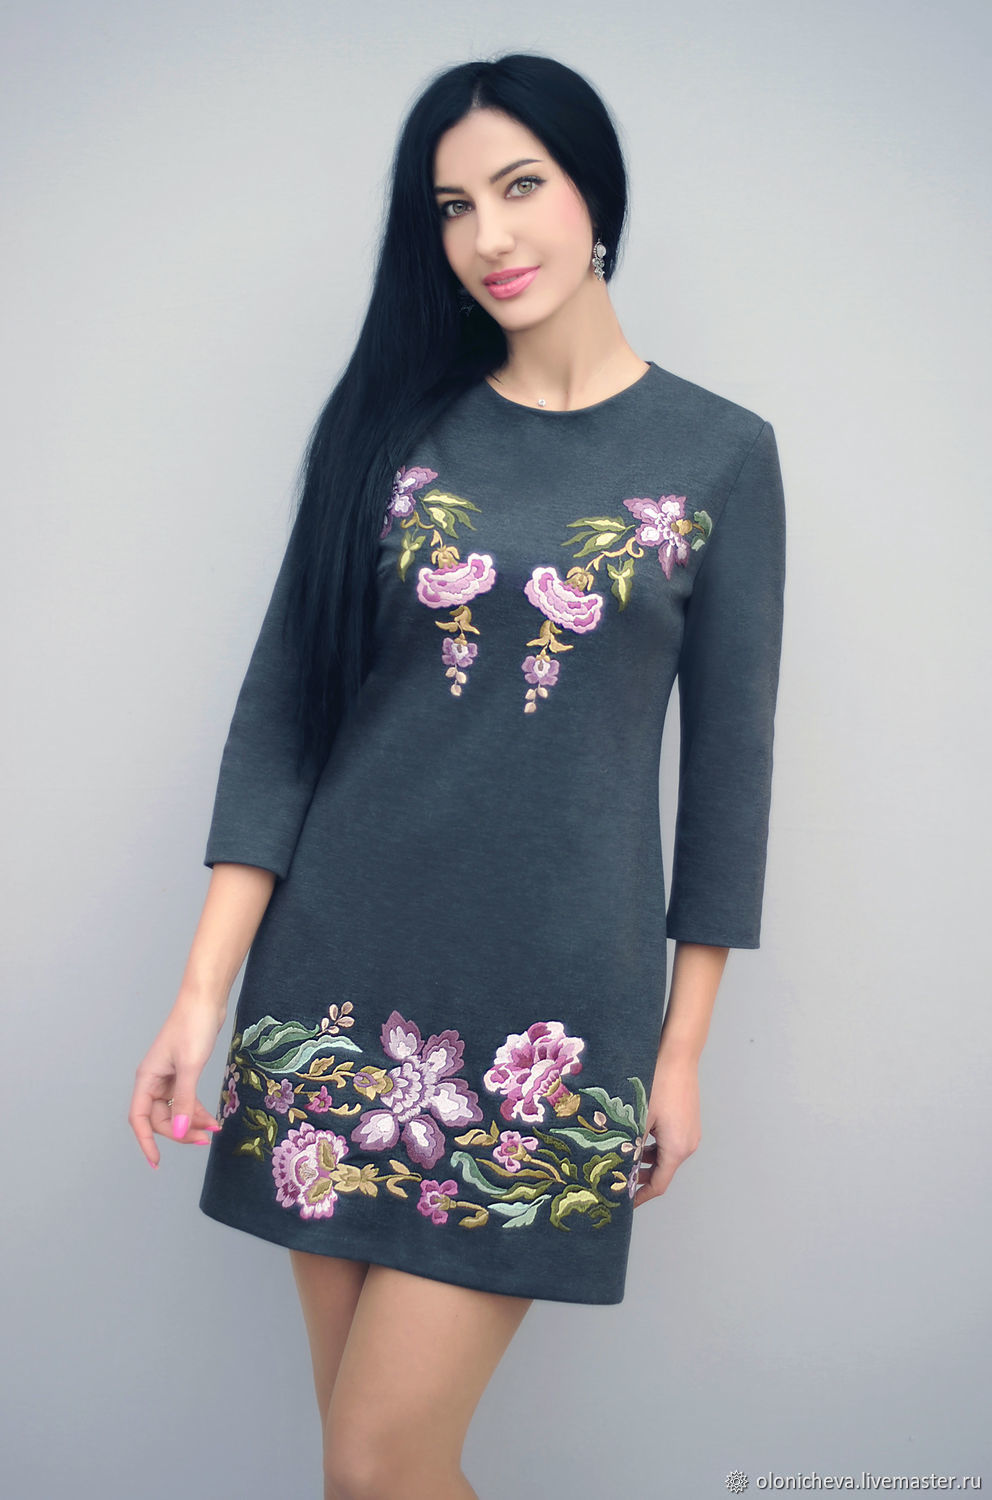 Dress with embroidery 'Lilac blossom' knitted dress, Dresses, Vinnitsa,  Фото №1